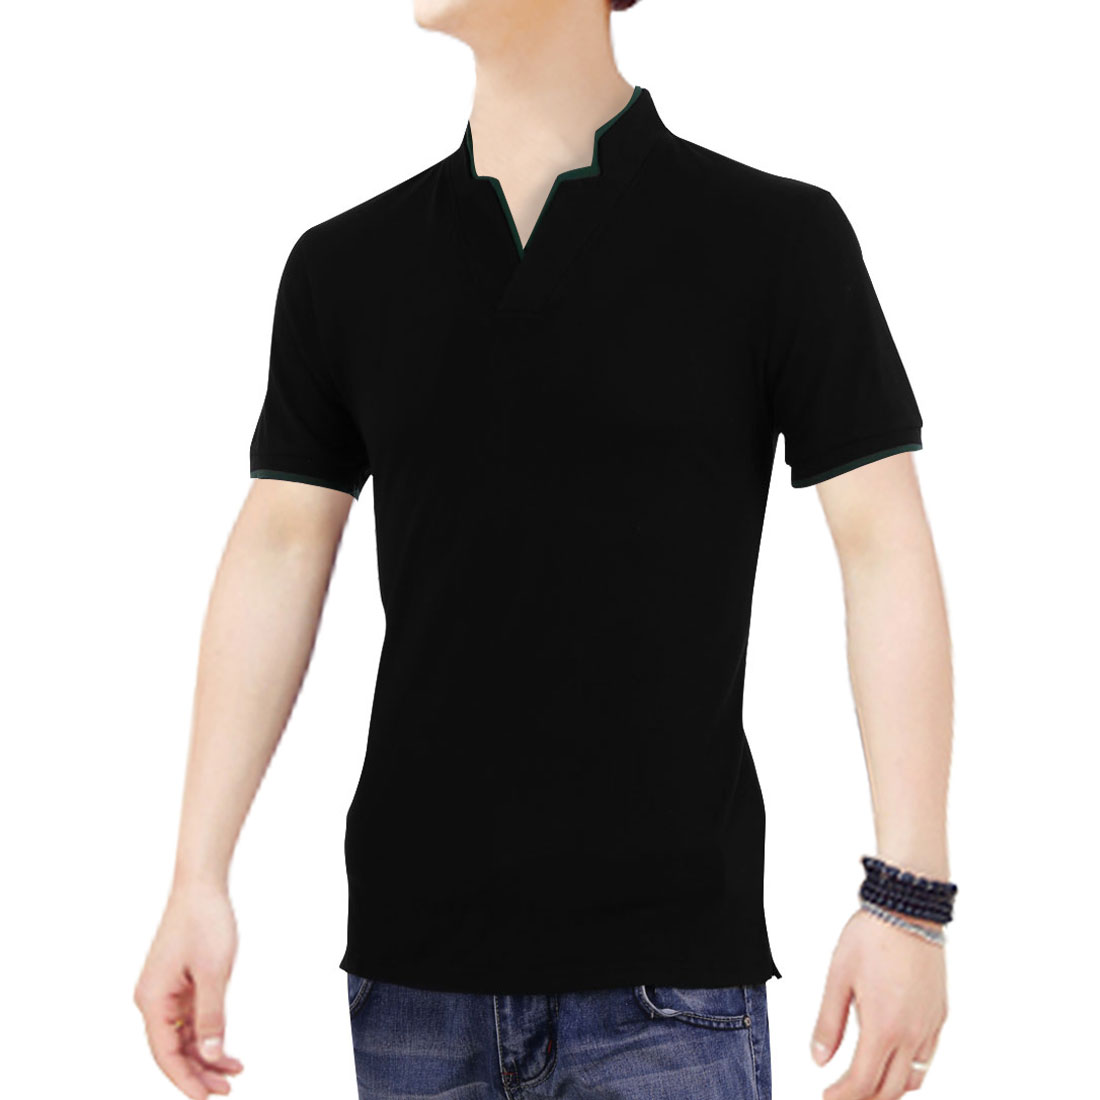 Man Short Sleeves Color Contrast V Neck Modern Shirts Black M